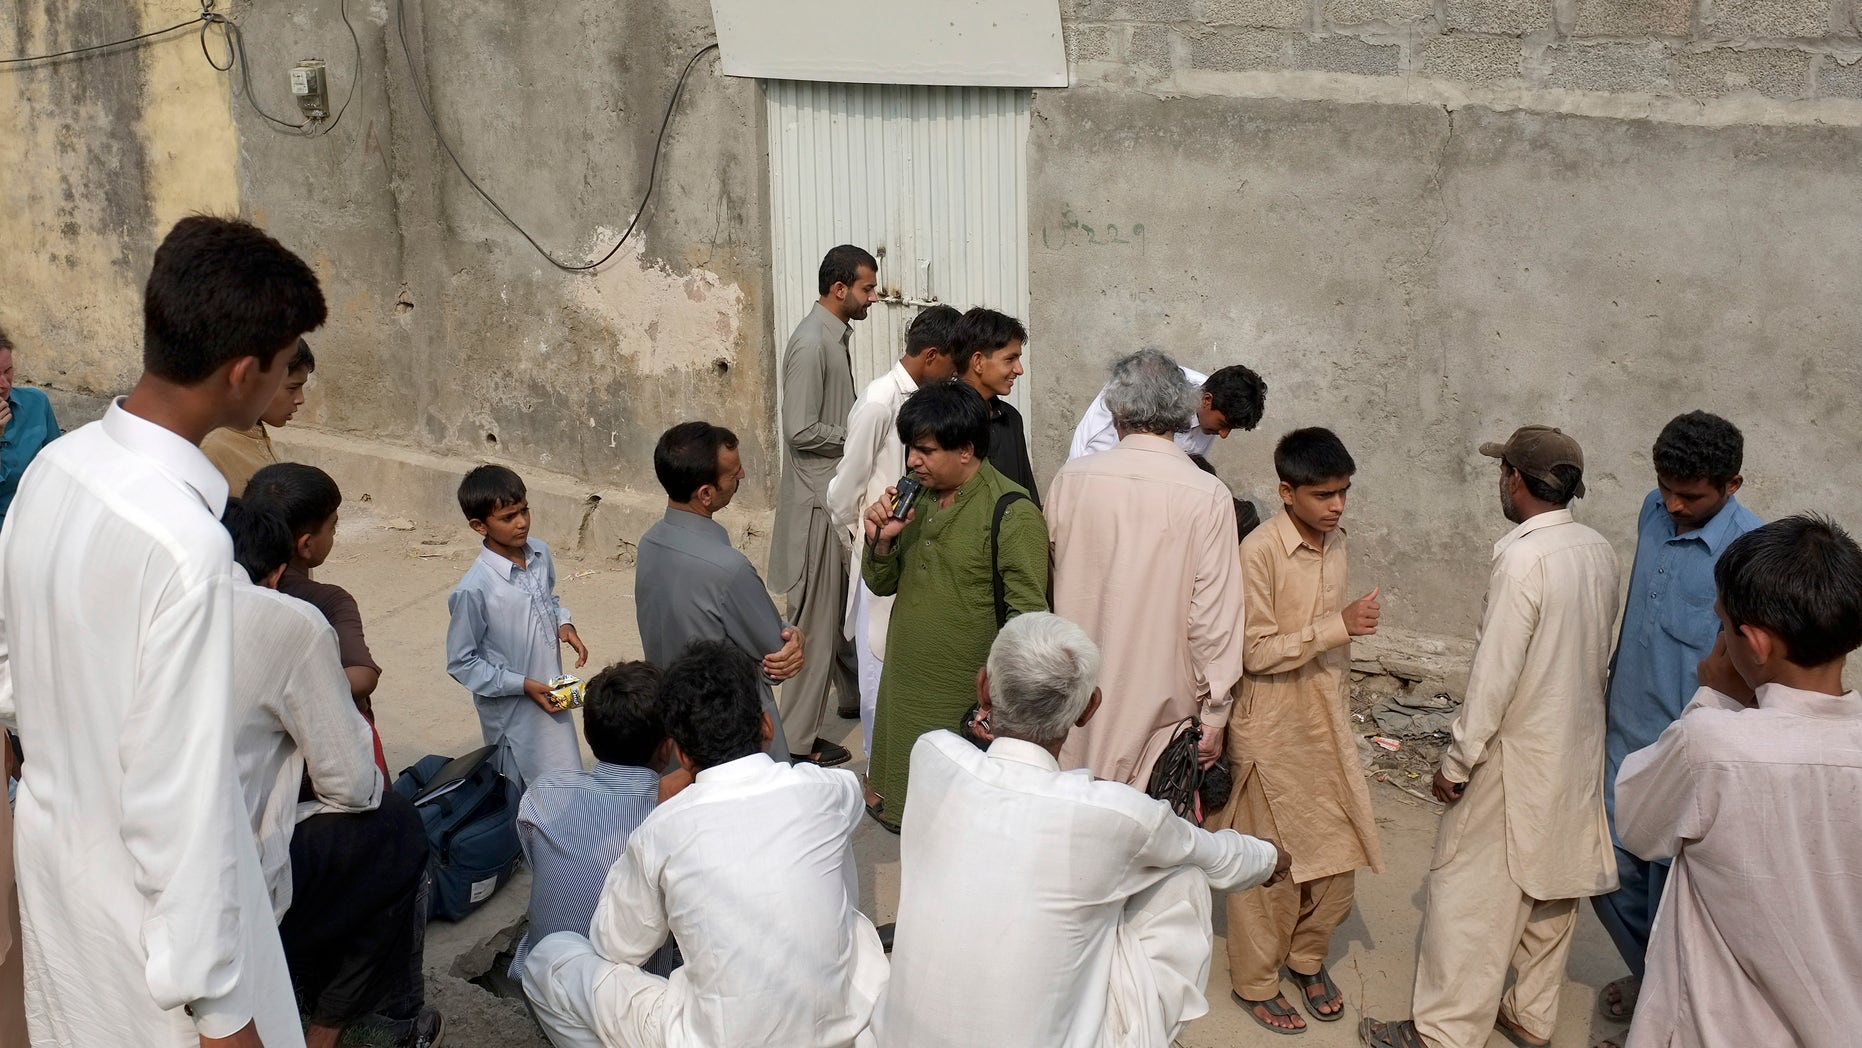 Aug. 20- People gathered outside the locked house of a Christian girl in suburbs of Islamabad, Pakistan. Pakistani authorities arrested a Christian girl and are investigating whether she violated the country's strict blasphemy laws.